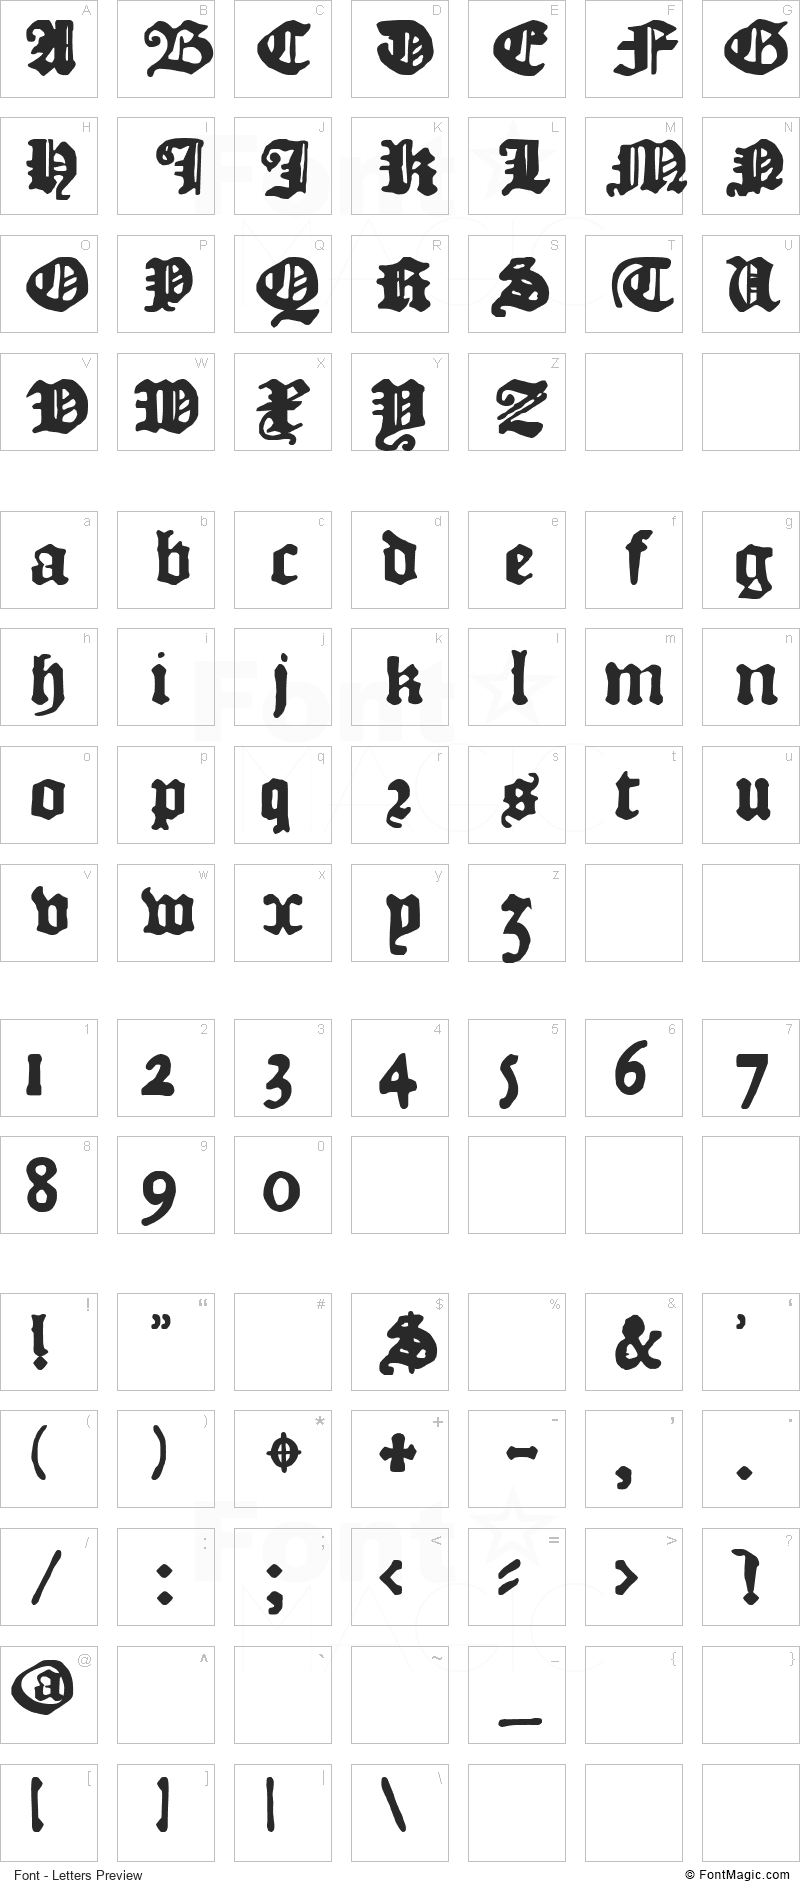 DK Courant Font - All Latters Preview Chart